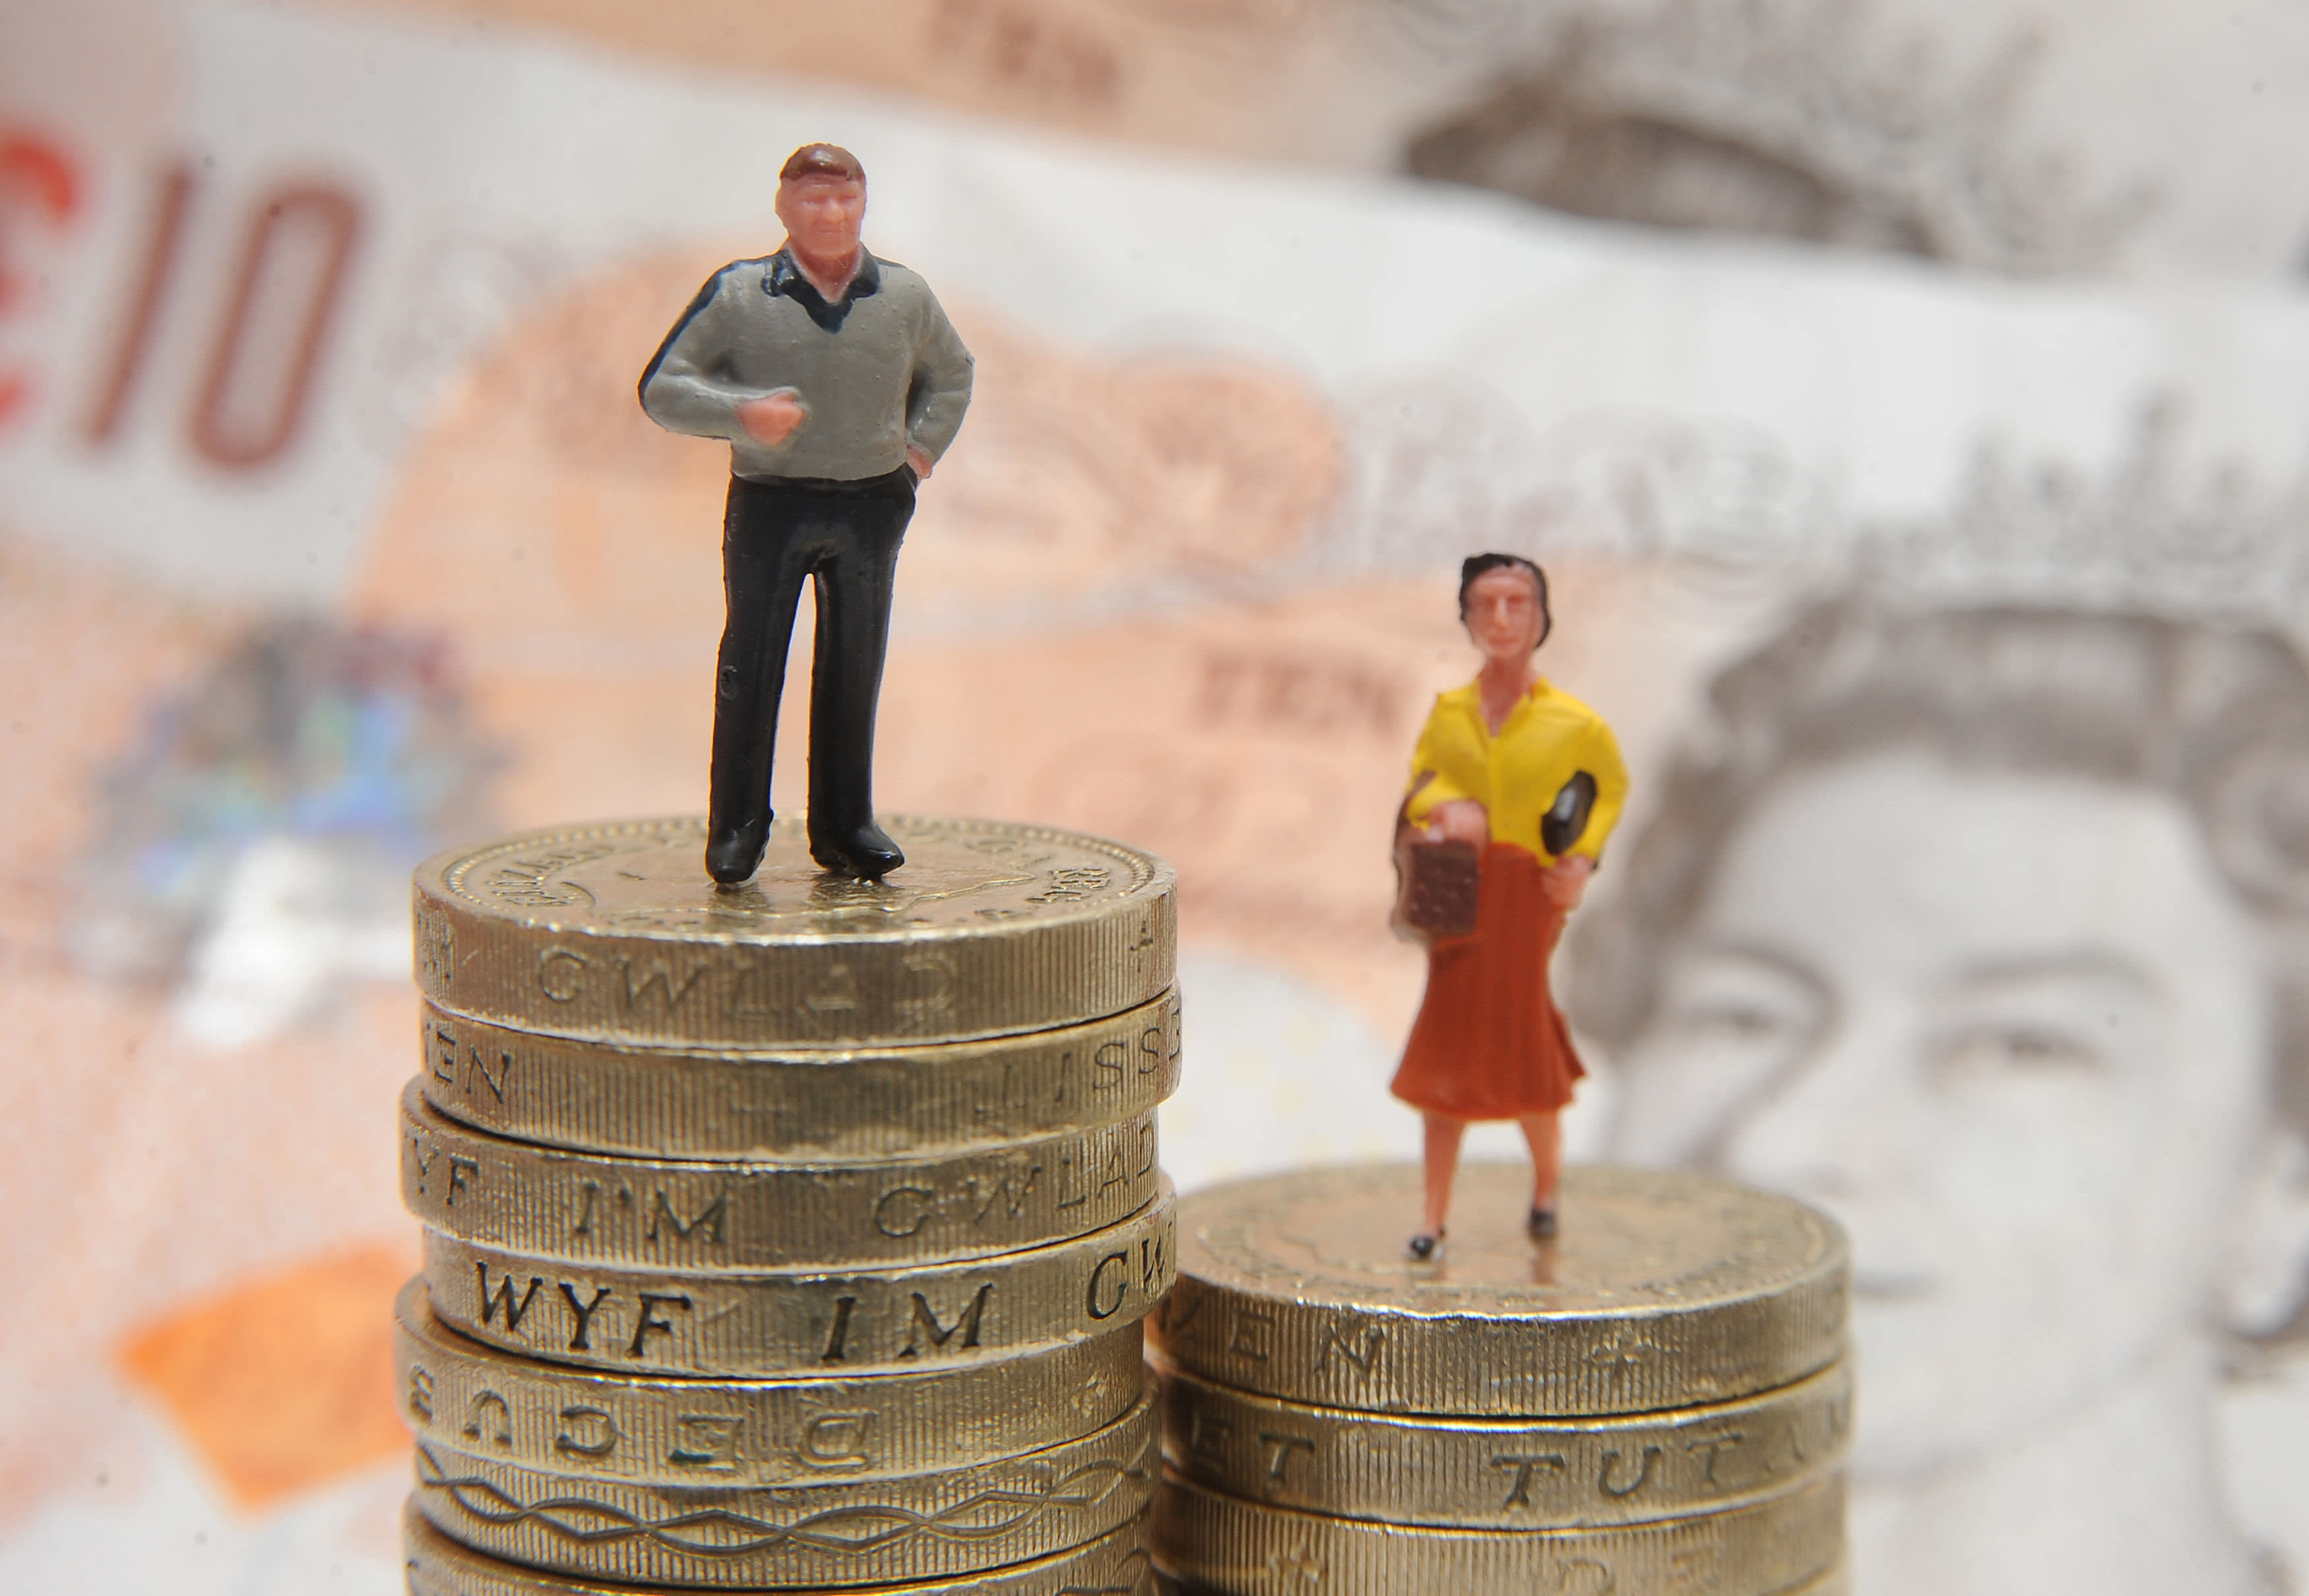 Women have £7k less in their pension than men